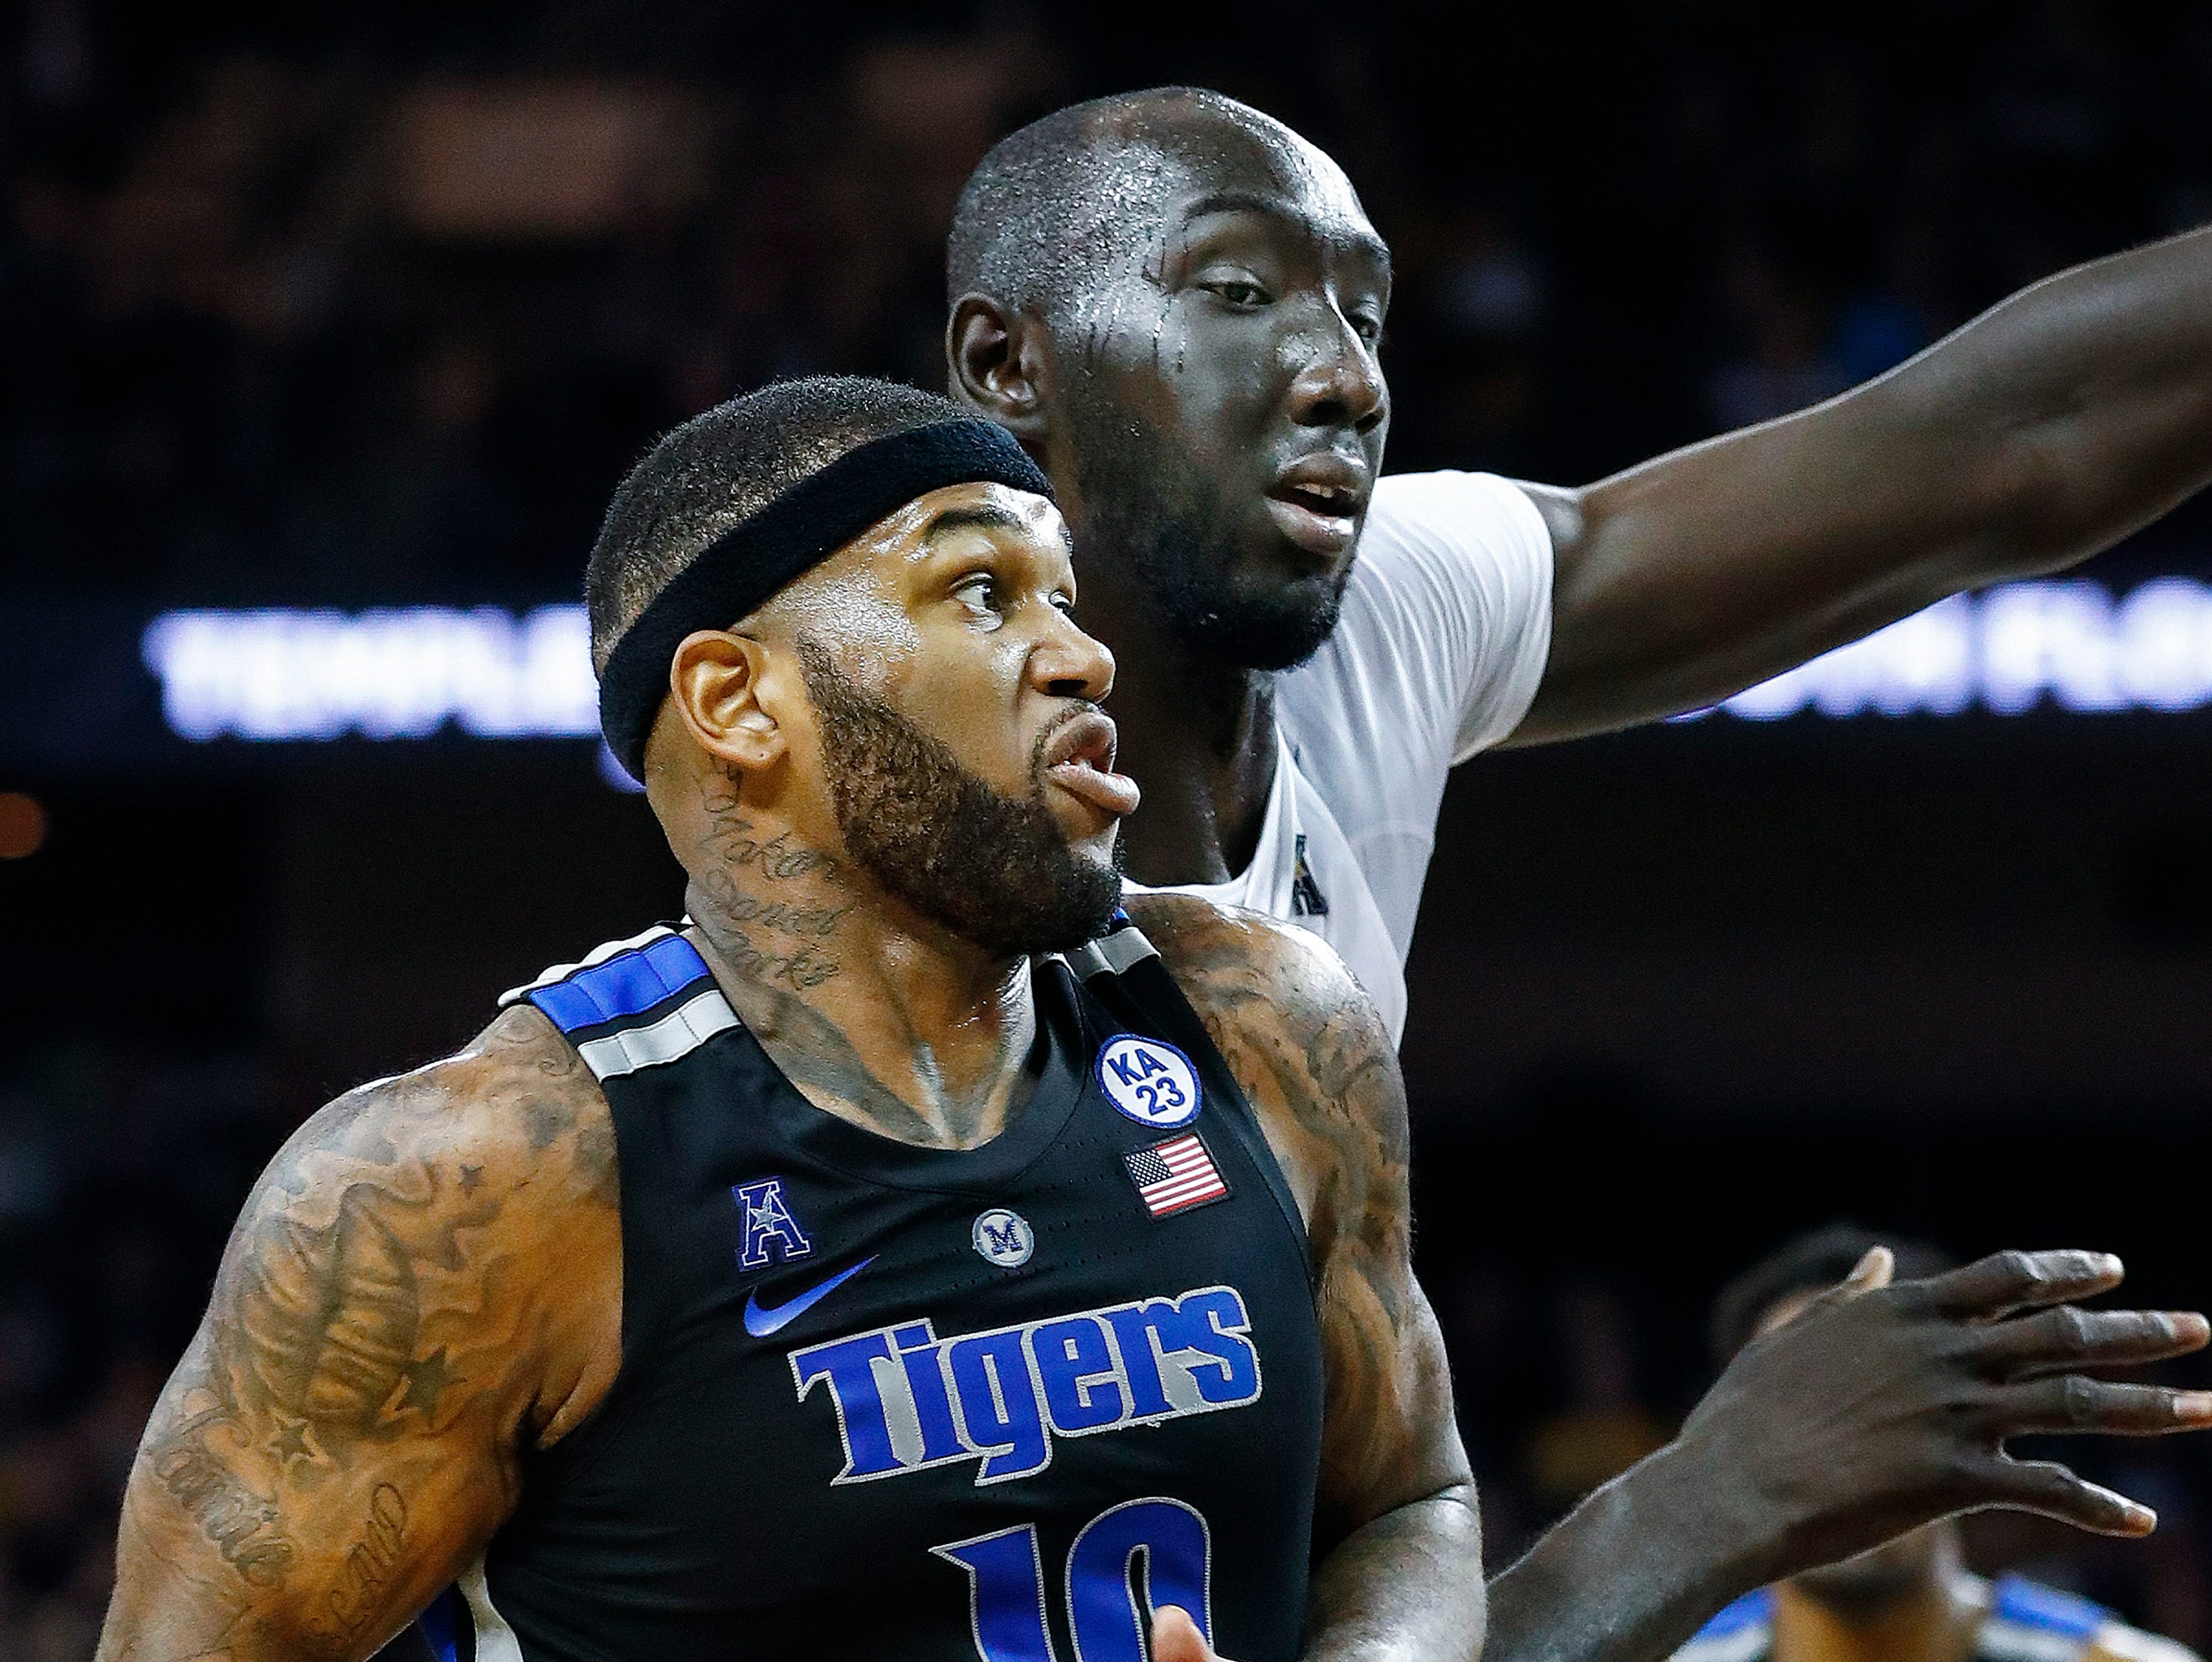 Memphis forward Mike Parks Jr. (left) drives the lane against UCF defender Tacko Fall (right) during action in Orlando Saturday, February 16, 2019.